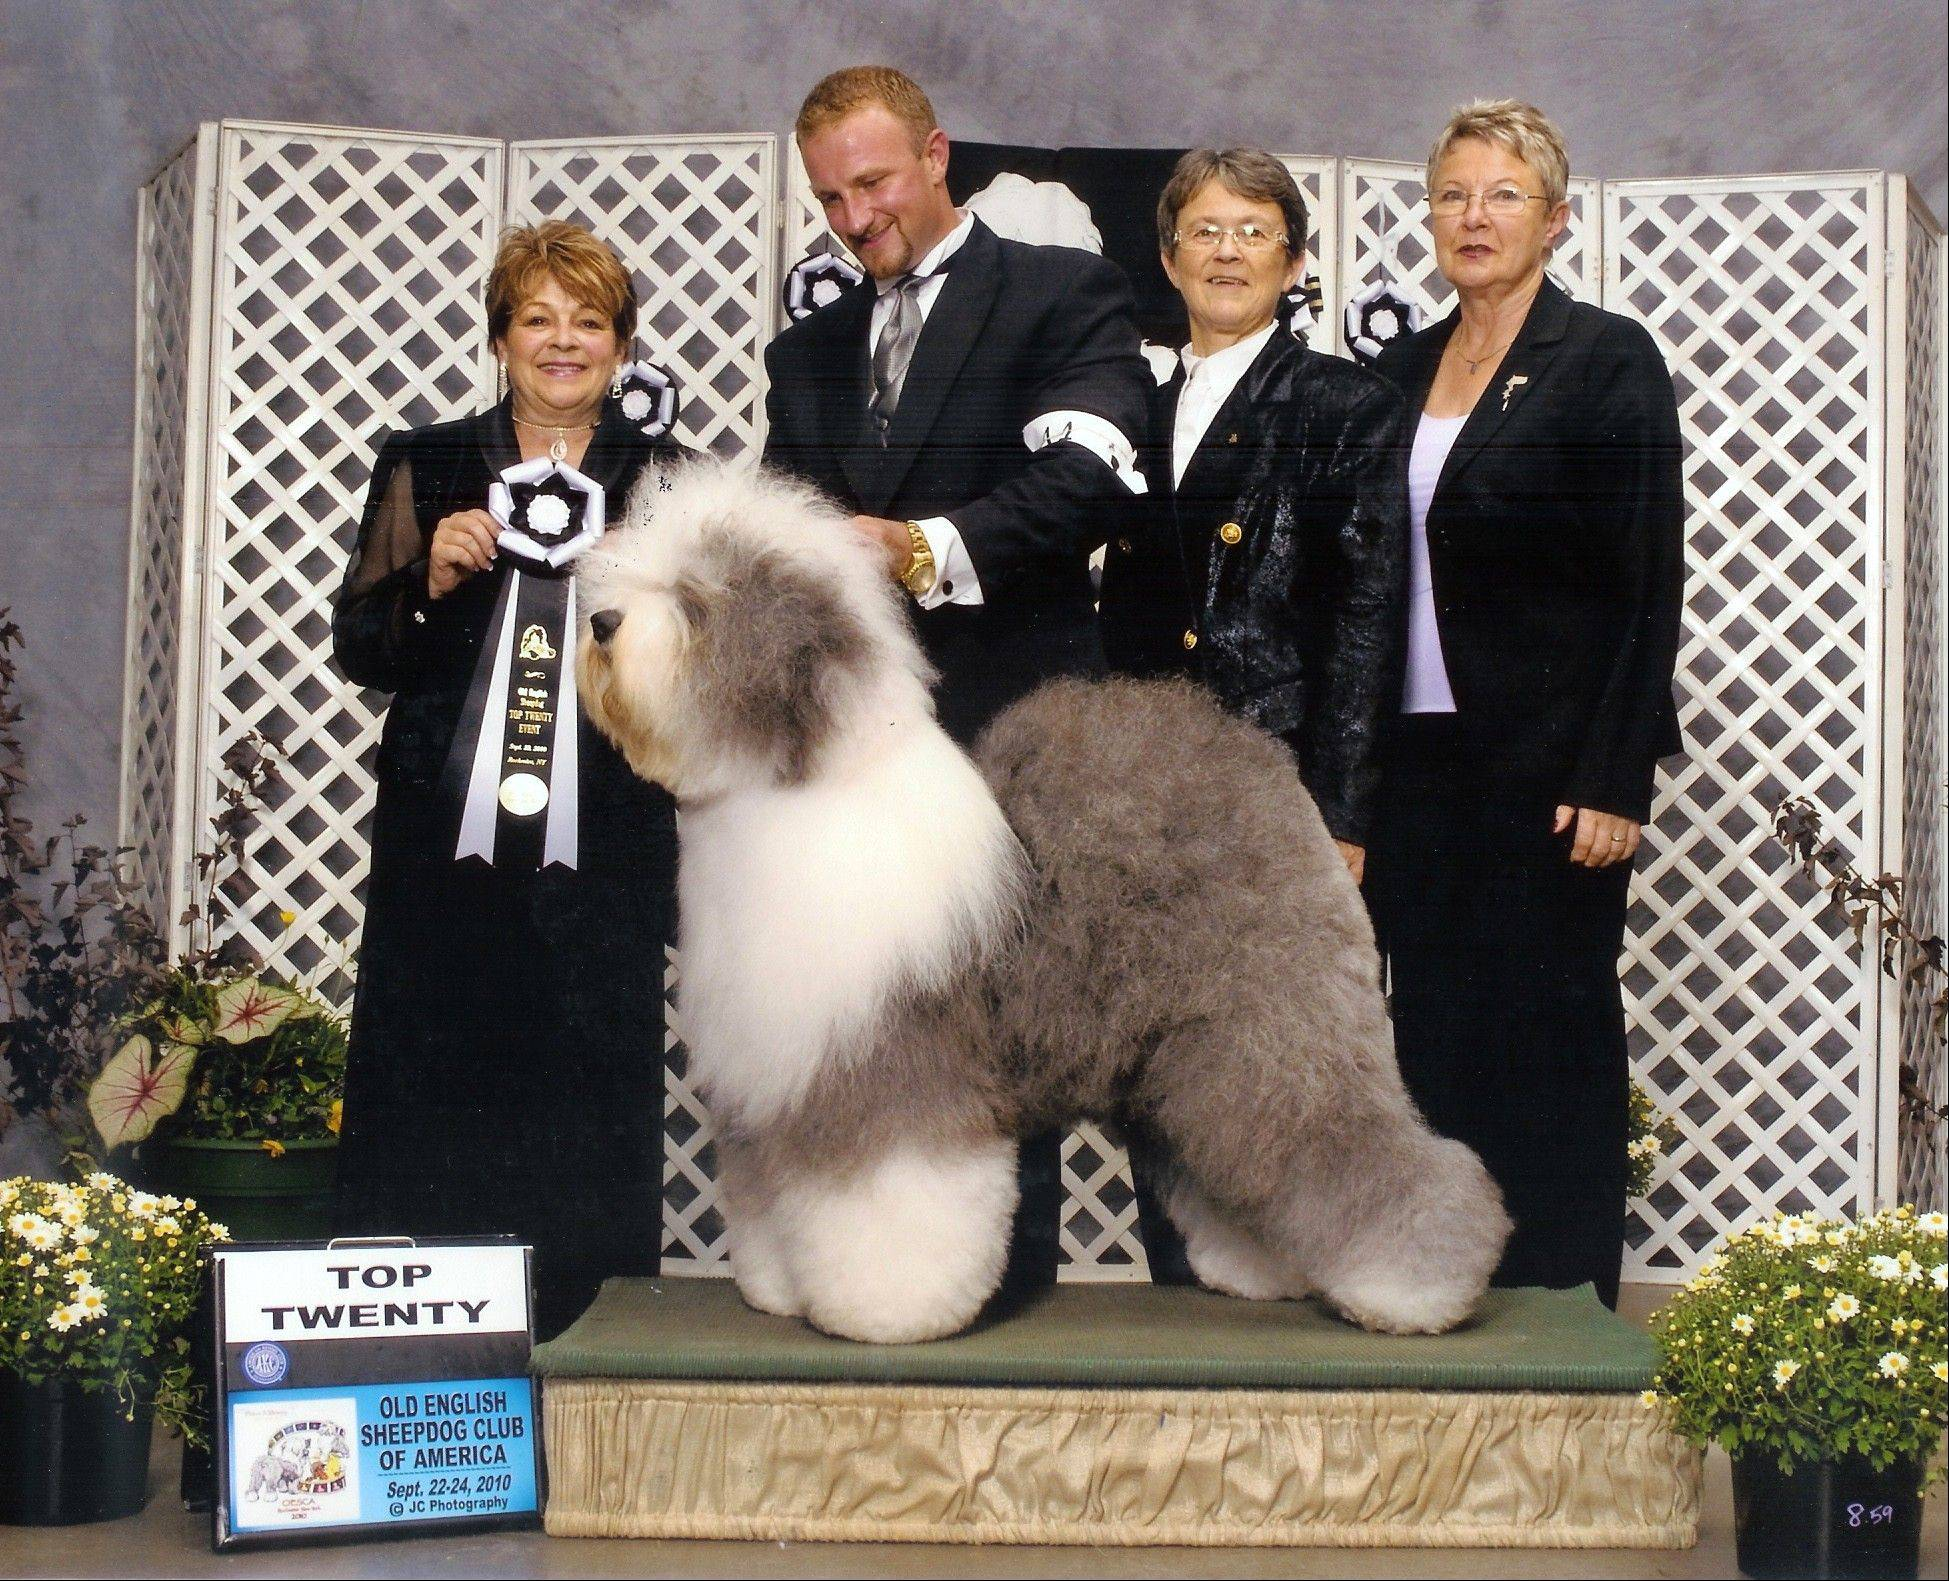 English sheepdog, Georgie Girl, placed in the top 20 at an Old English Sheepdog of America competition. Breeders in the United States and England are concerned about the drop in the number of purebred sheepdog puppies.